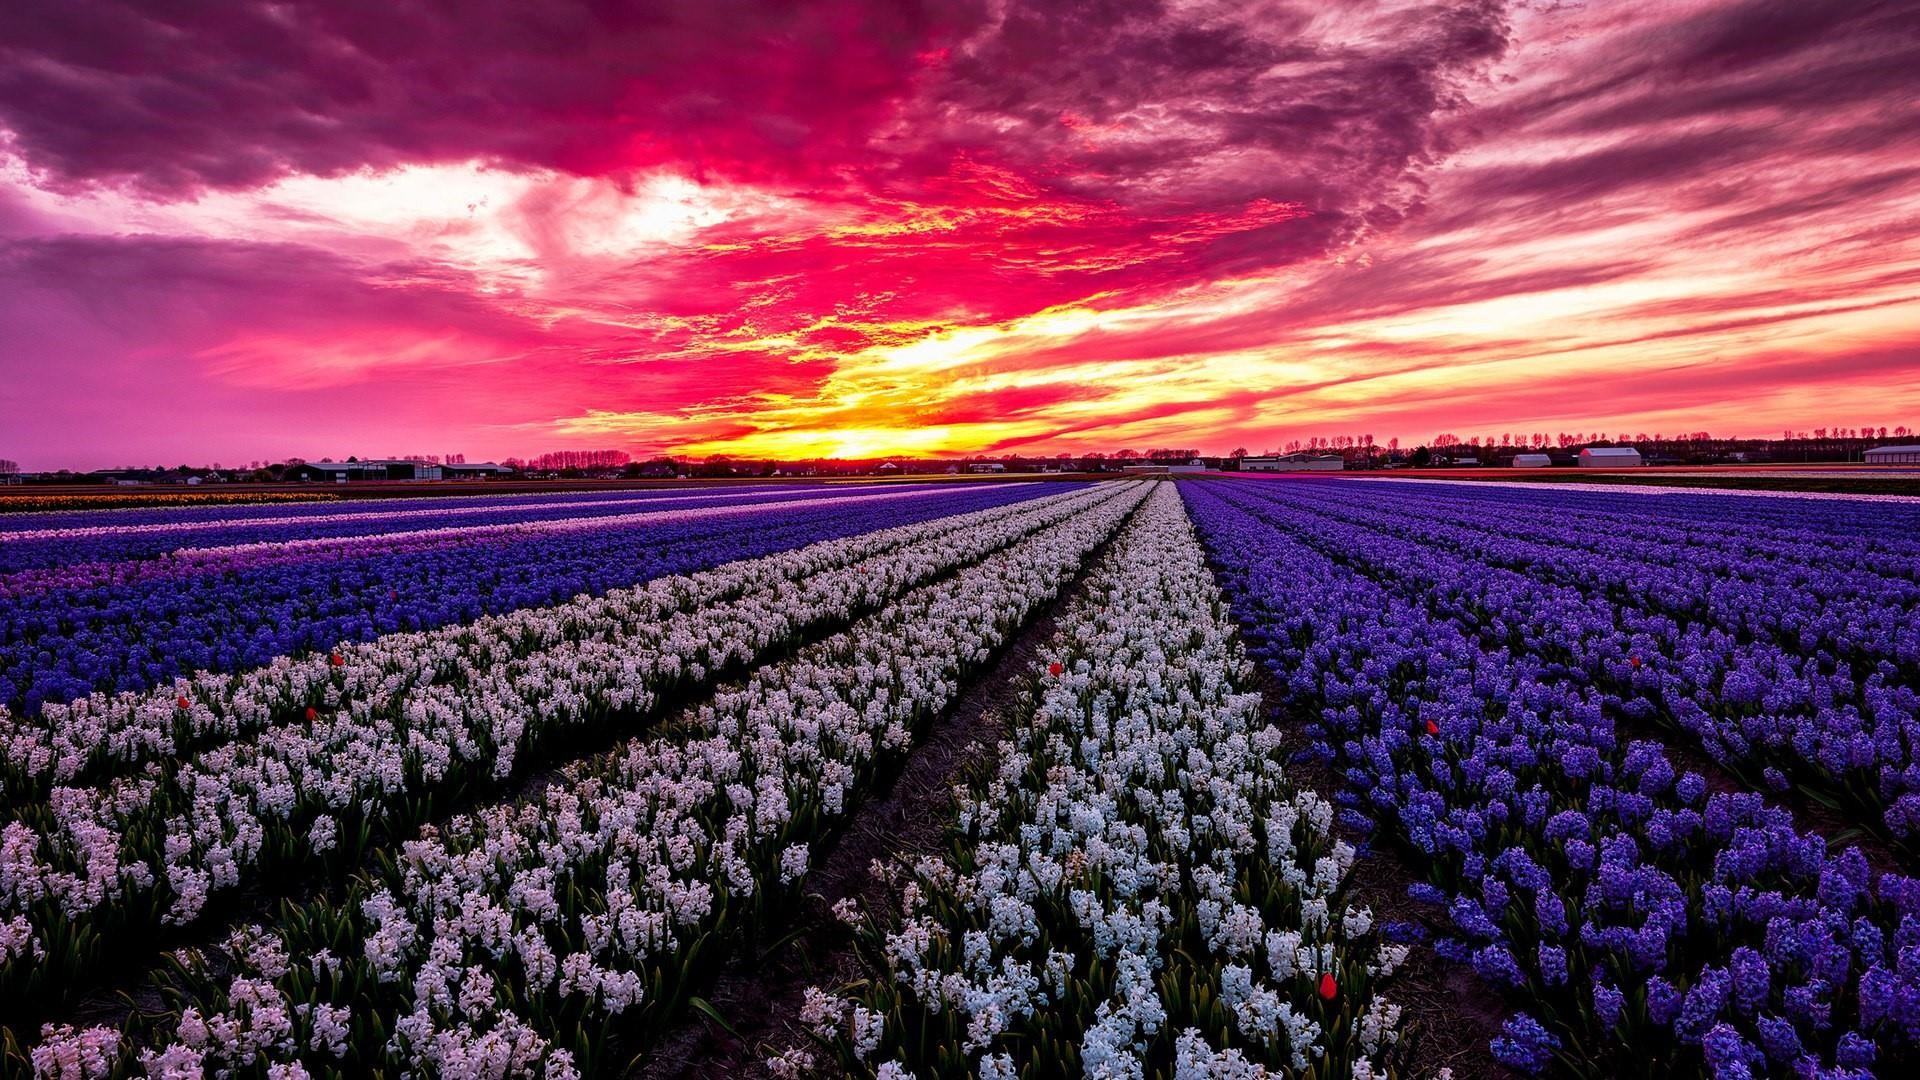 Res: 1920x1080, Hyacinth Farm Wallpaper | Wallpaper Studio 10 | Tens of thousands HD and  UltraHD wallpapers for Android, Windows and Xbox